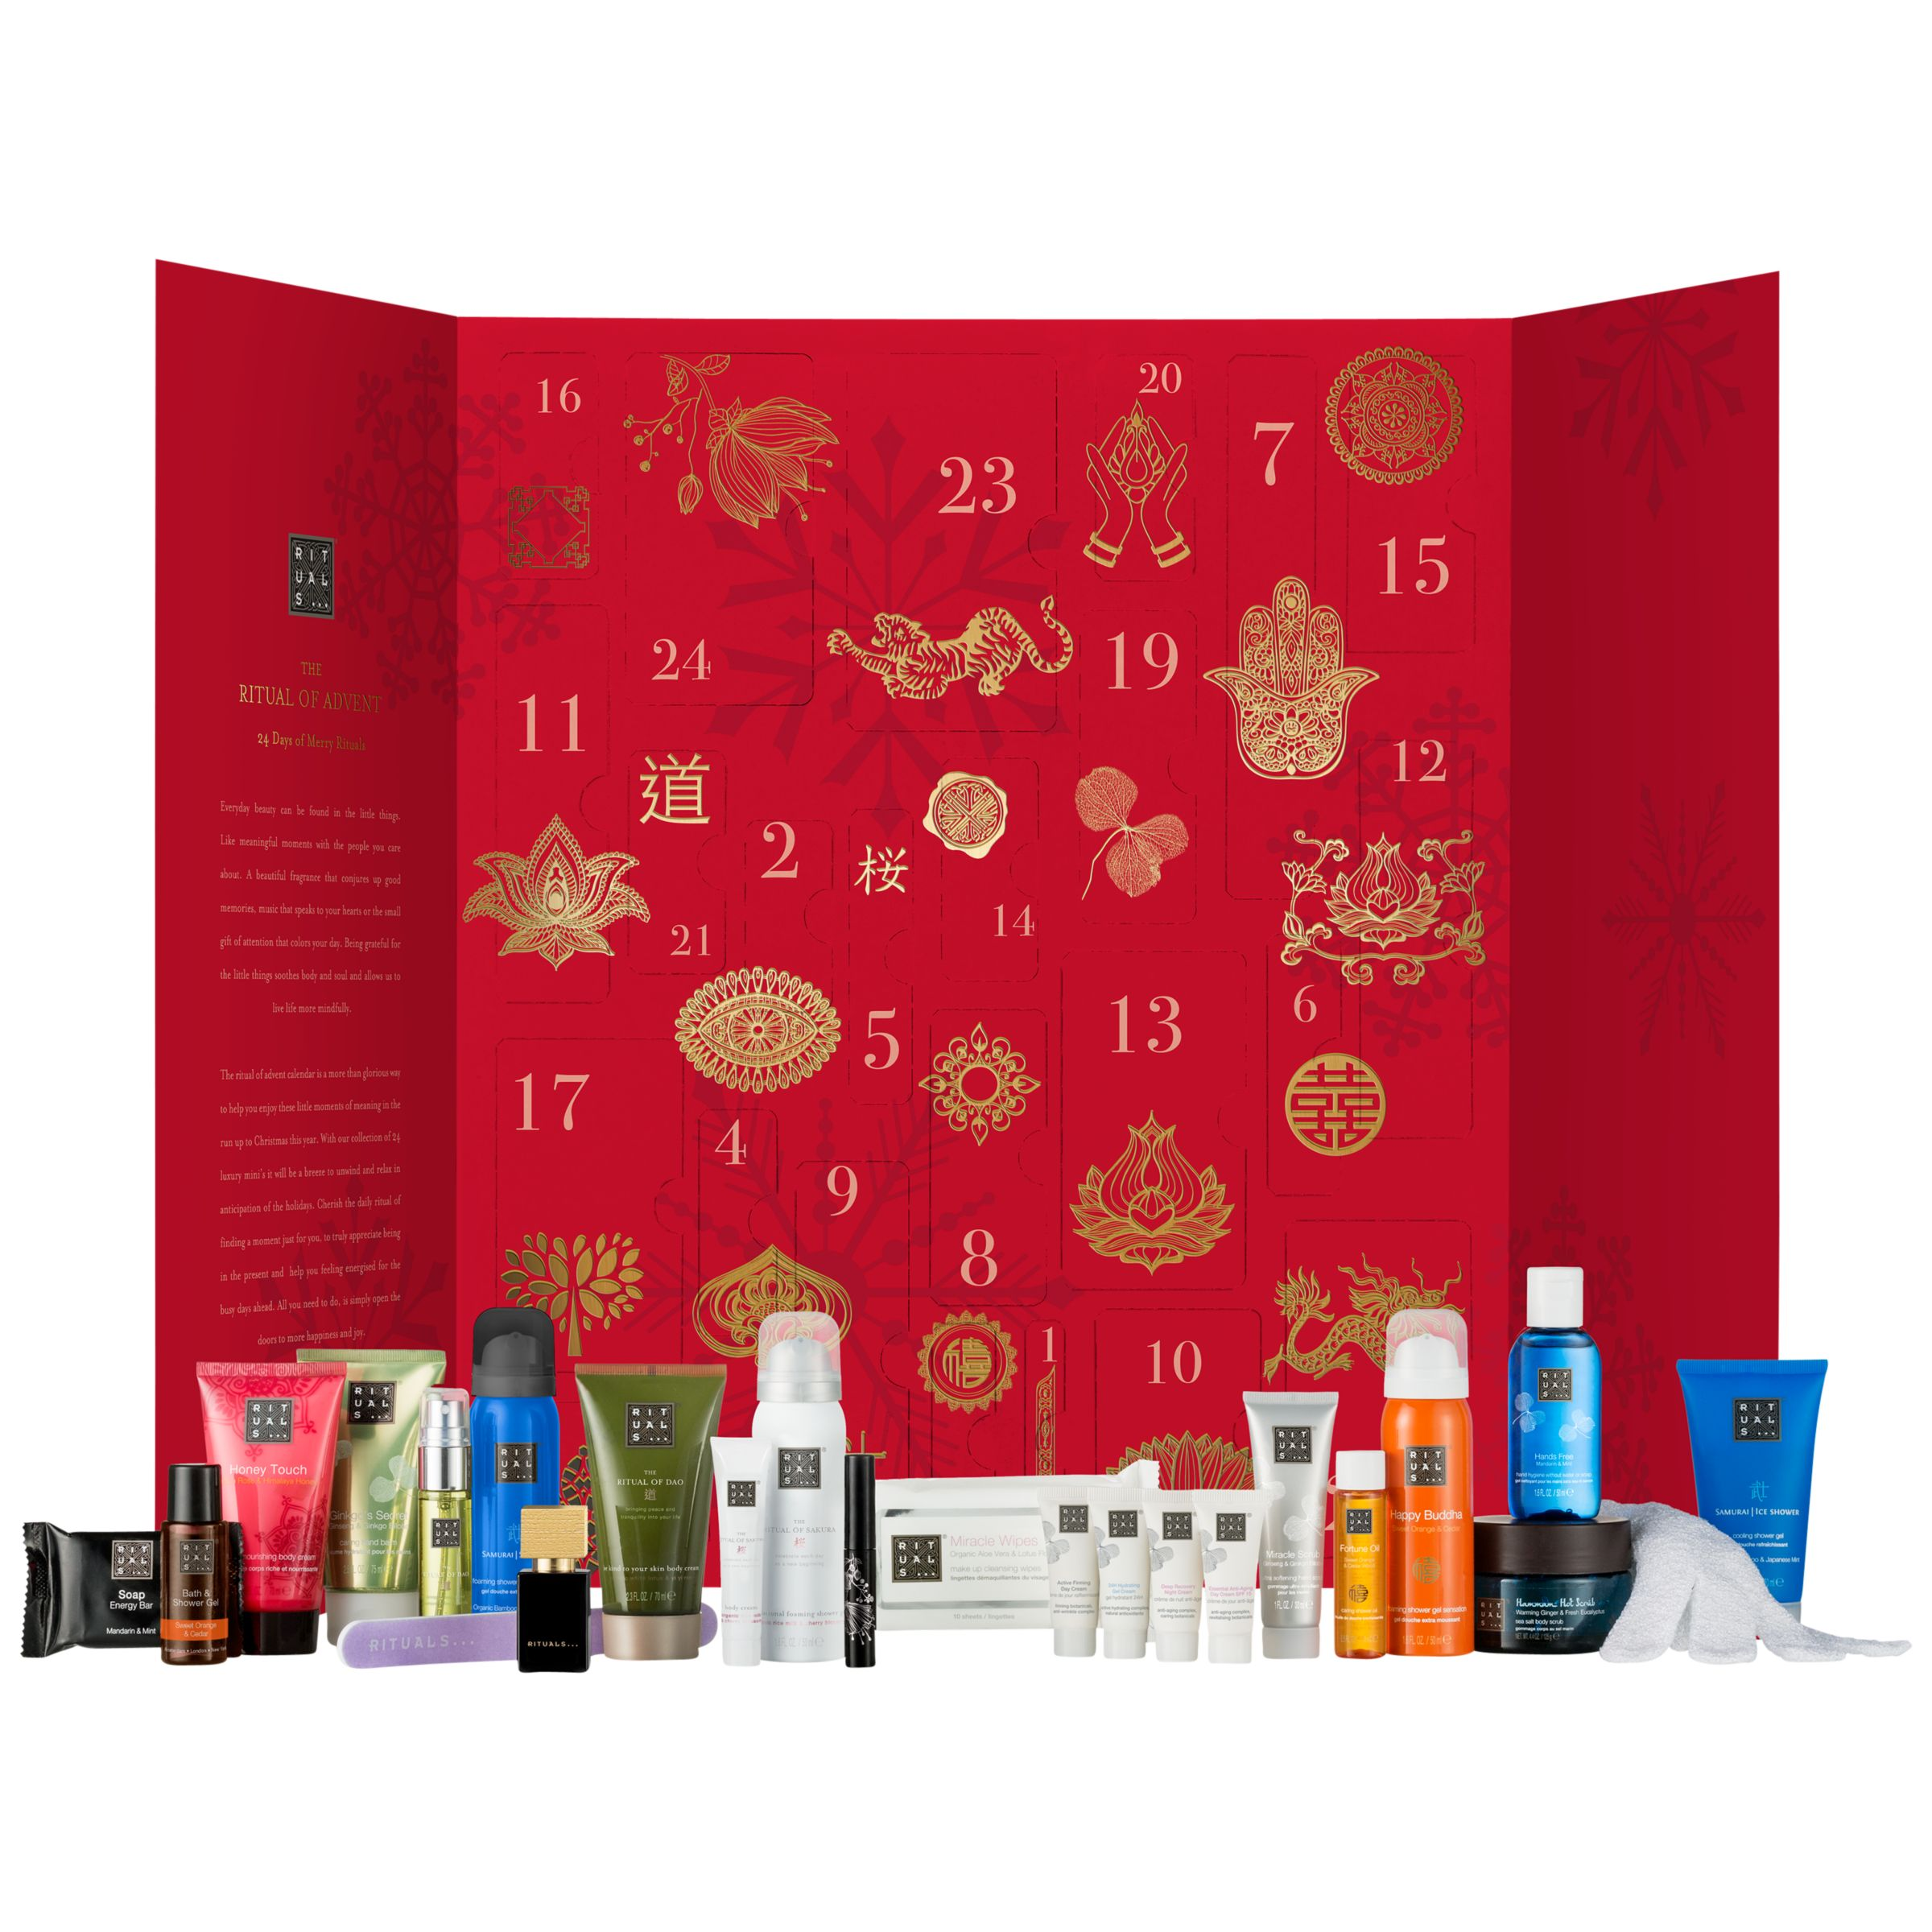 Bildresultat för The Ritual of Advent Exclusive Advent Calendar